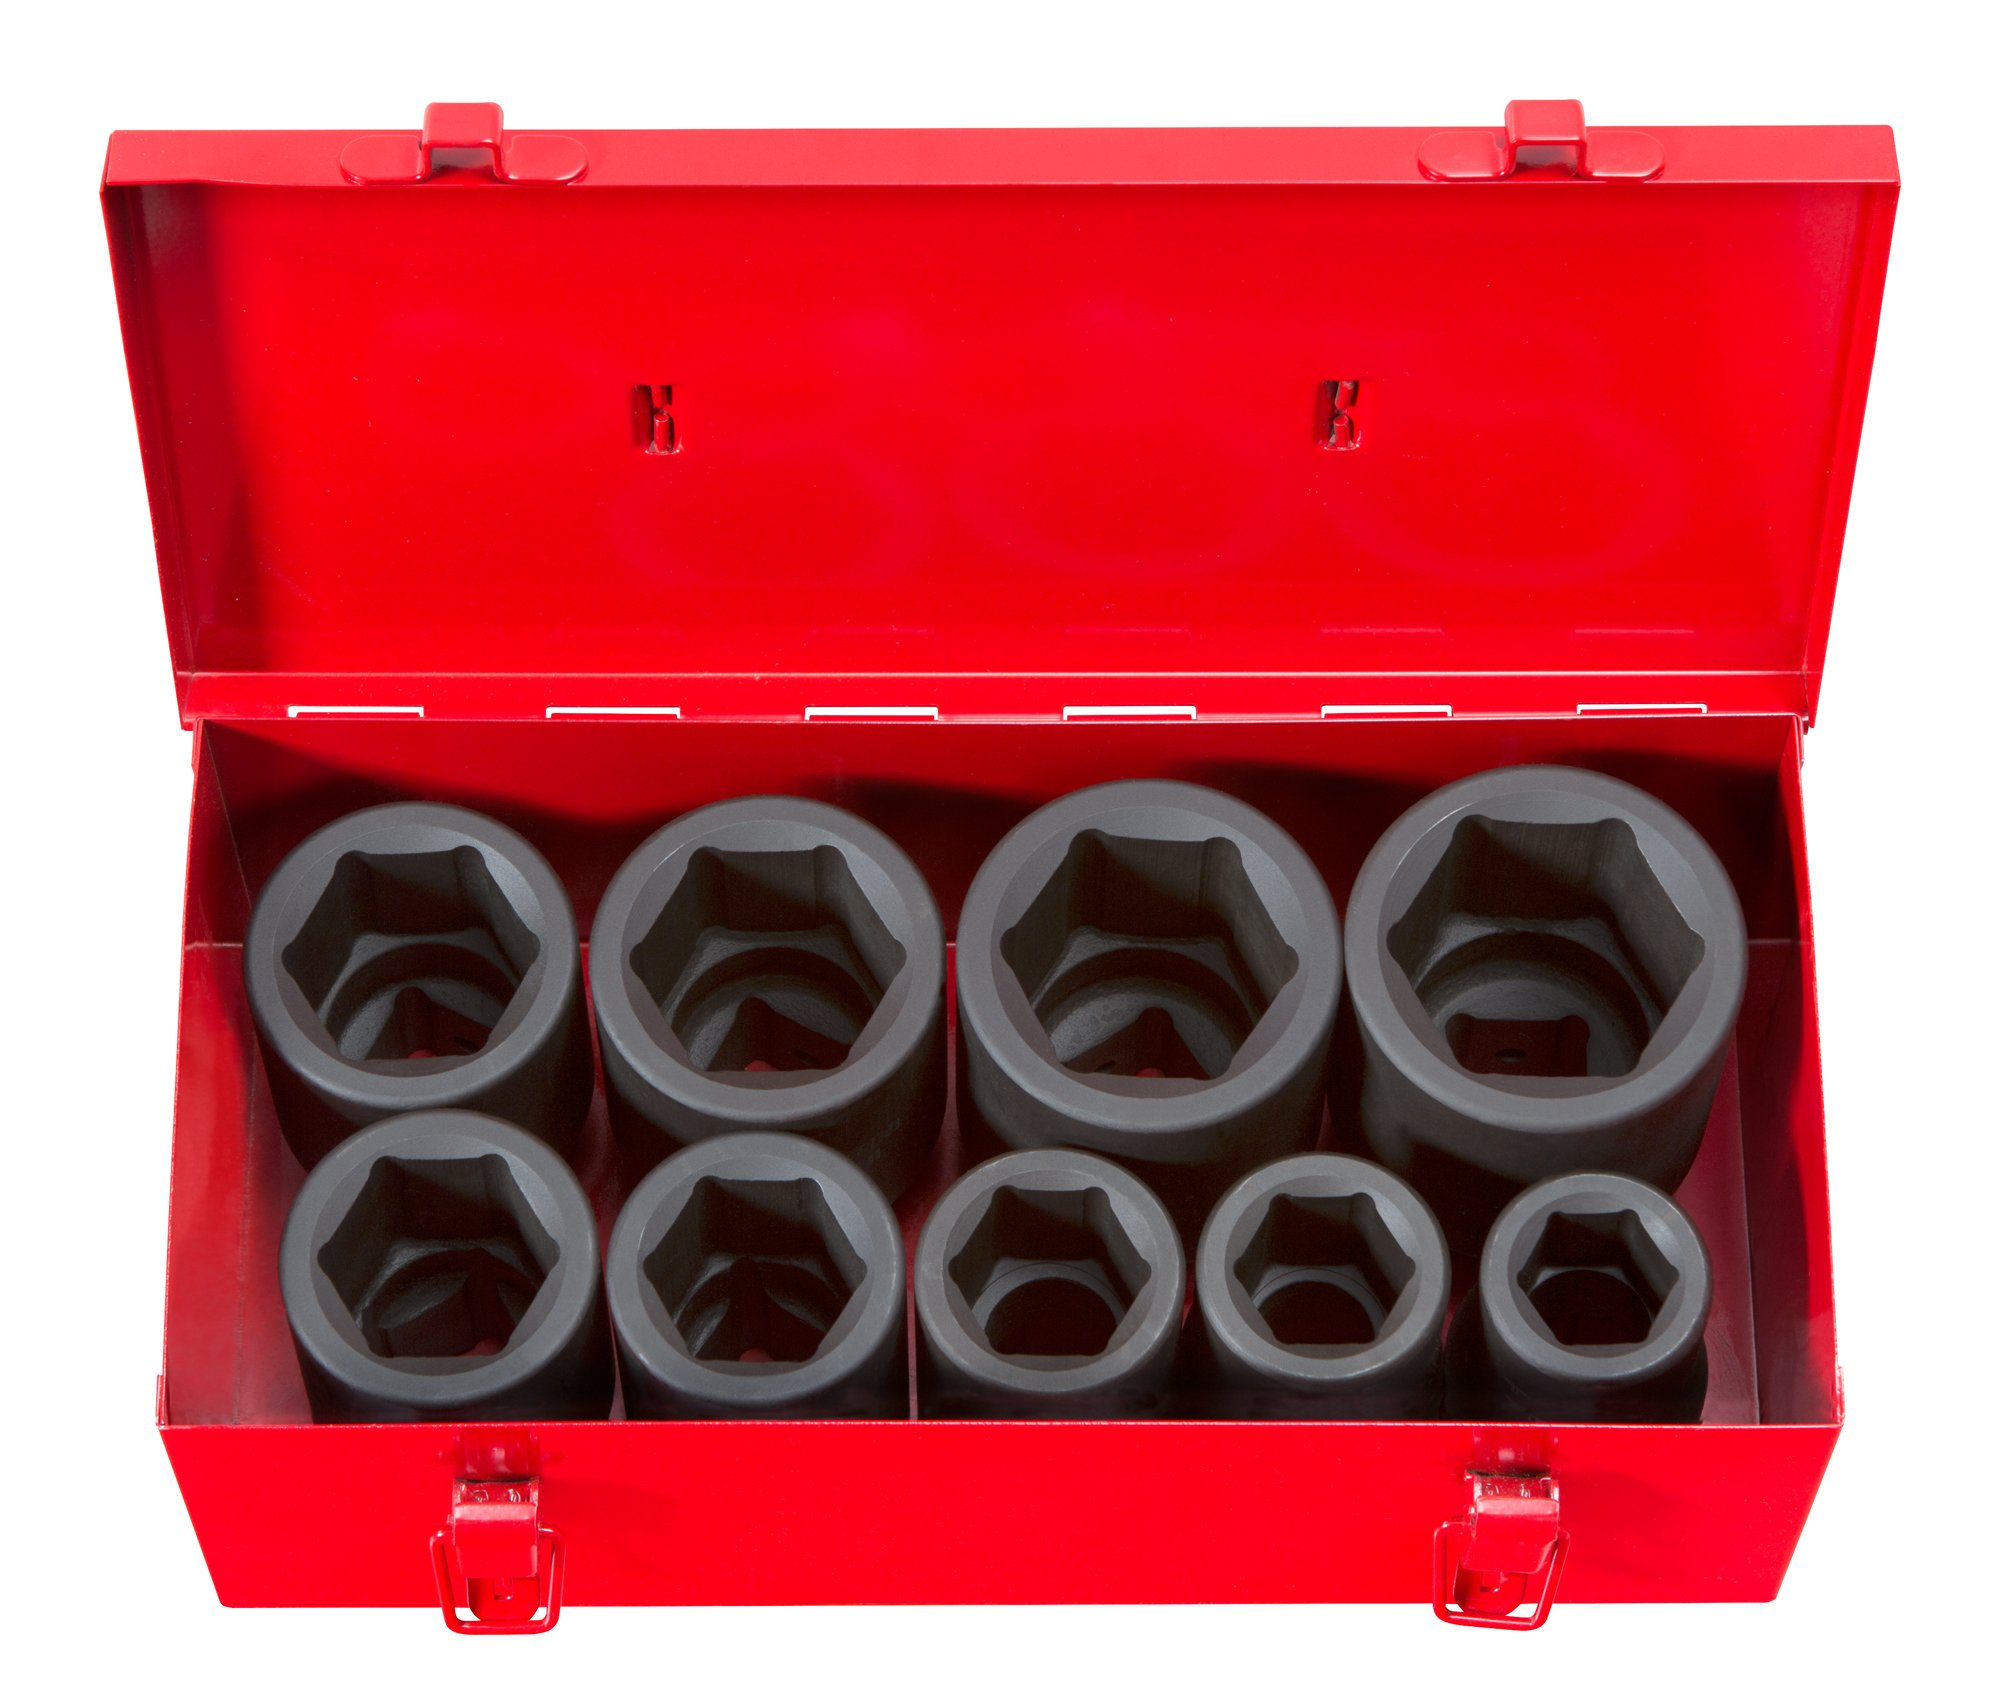 TEKTON 1-Inch Drive Deep Impact Socket Set, Inch, Cr-Mo, 6-Point, 1-Inch - 2-Inch, 9-Sockets | 4892 by TEKTON